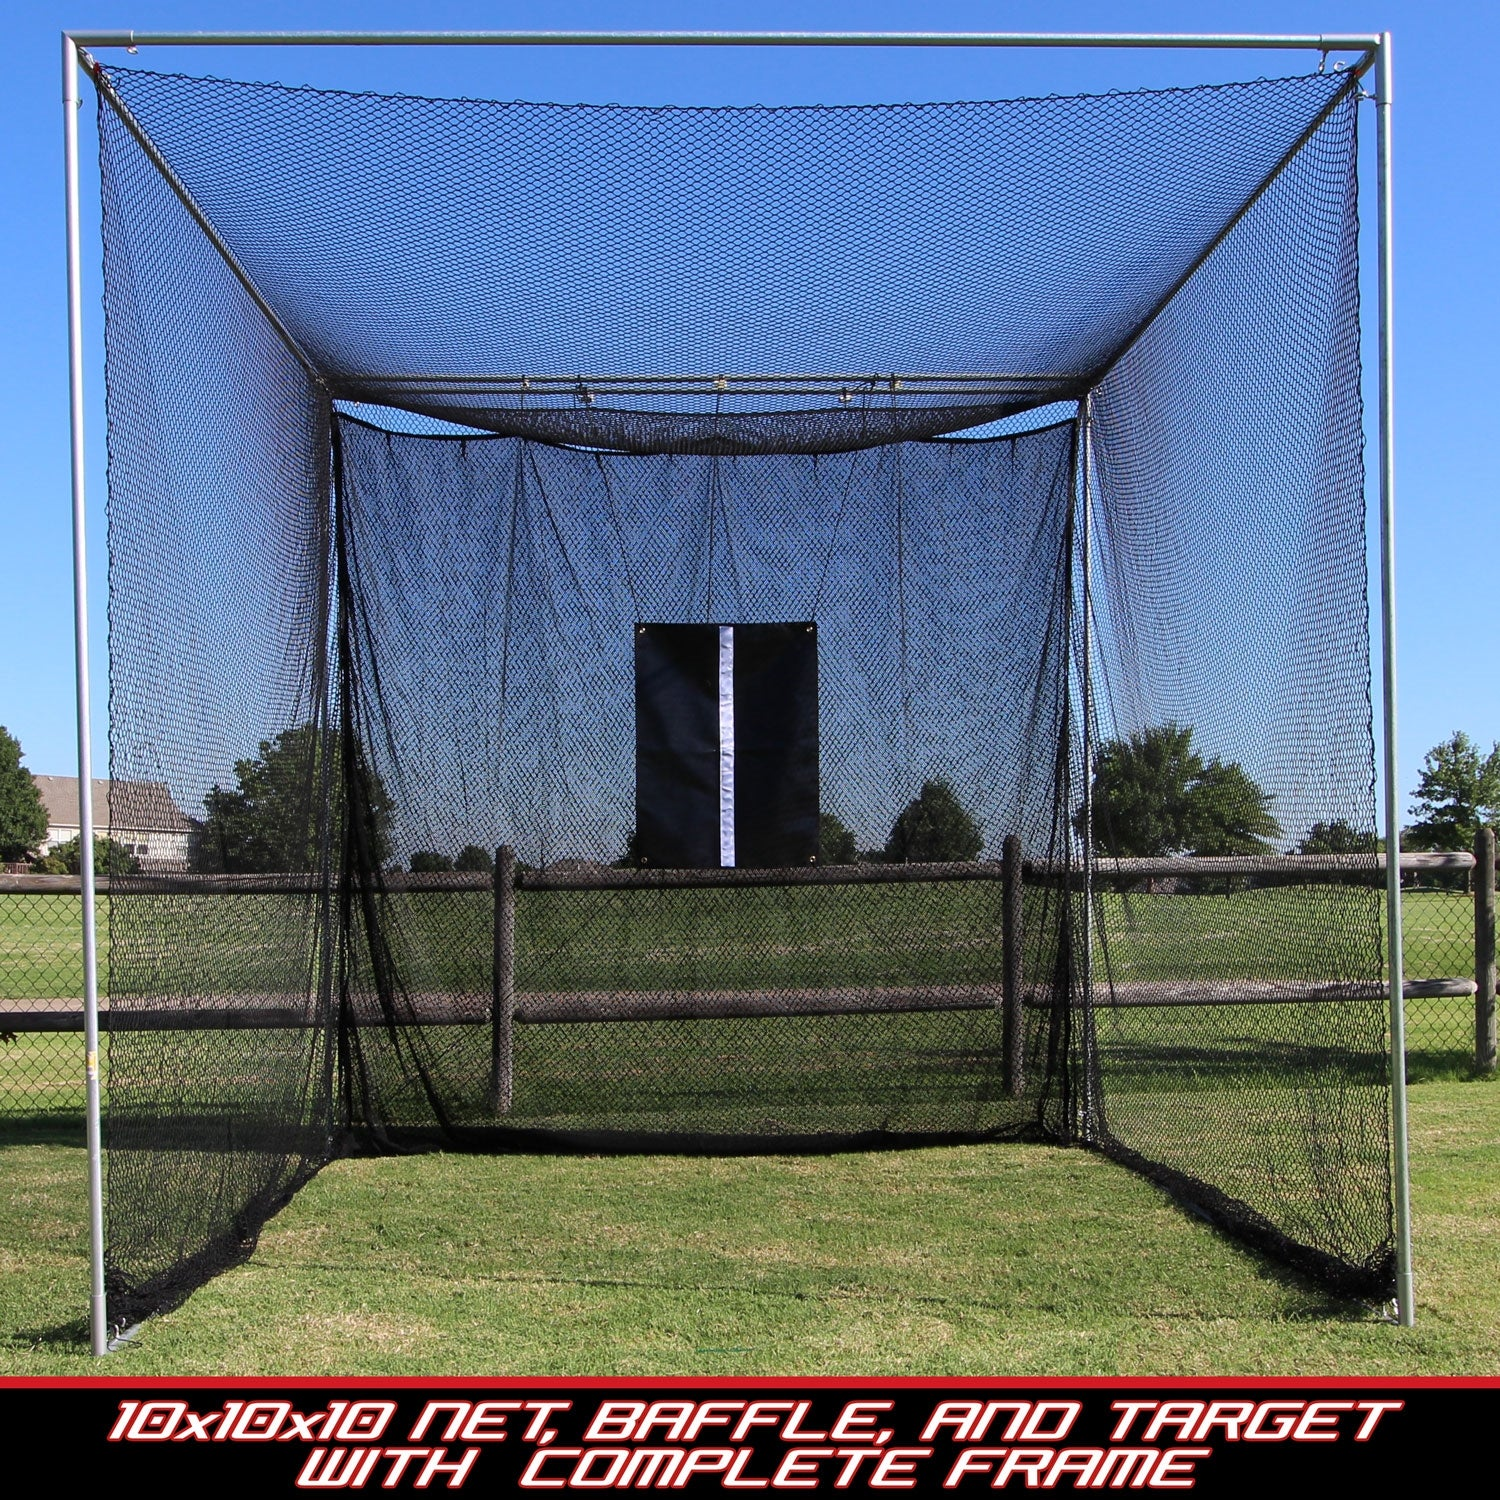 Deluxe Golf Cage Practice Net 10' x 10' x 10' - Complete Golf Cage Set